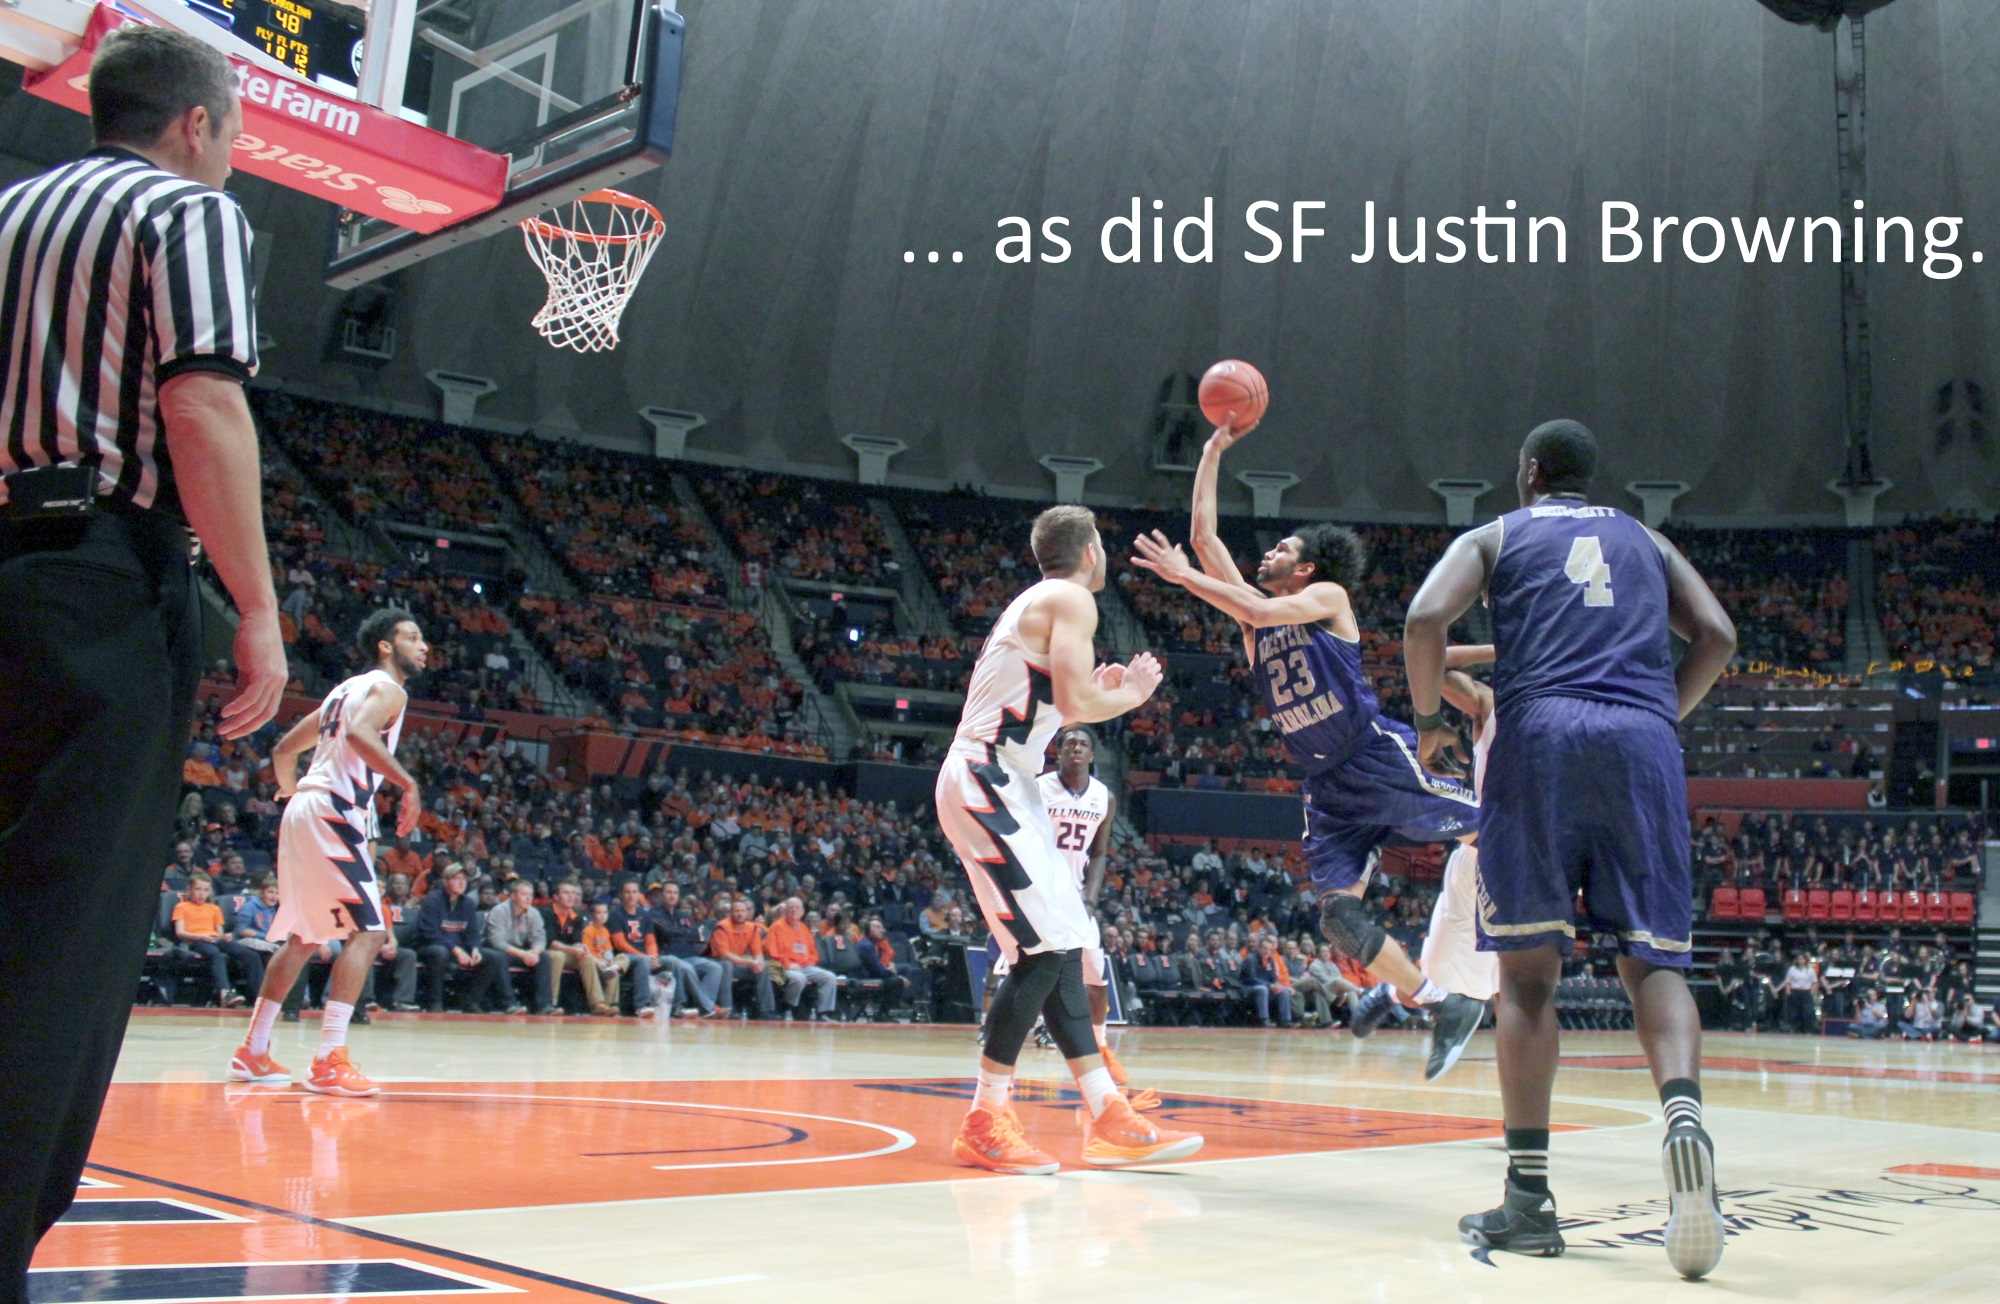 Justin Browning four turnovers